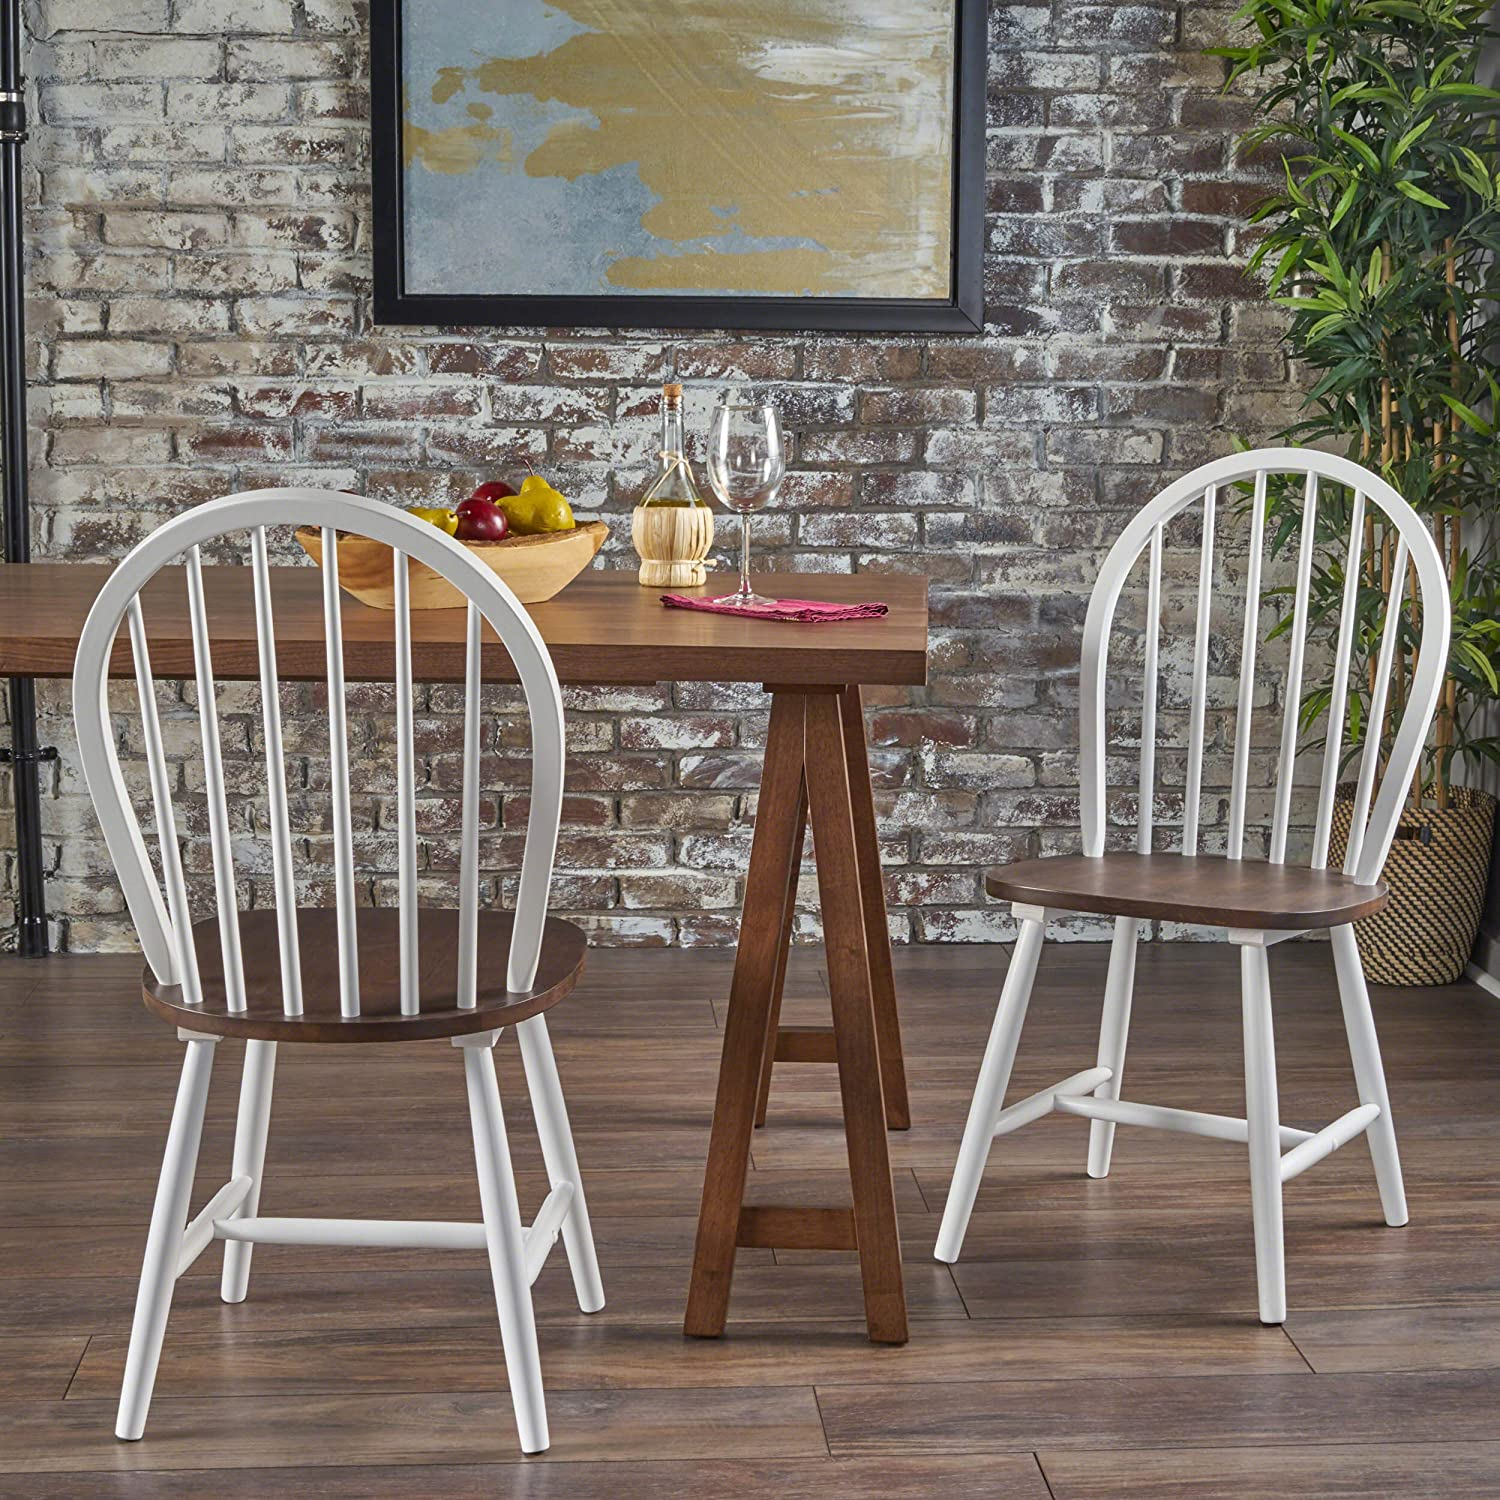 Amazon com crosby farmhouse cottage high back spindled white framed rubberwood dining chairs with brown seat set of 2 chairs